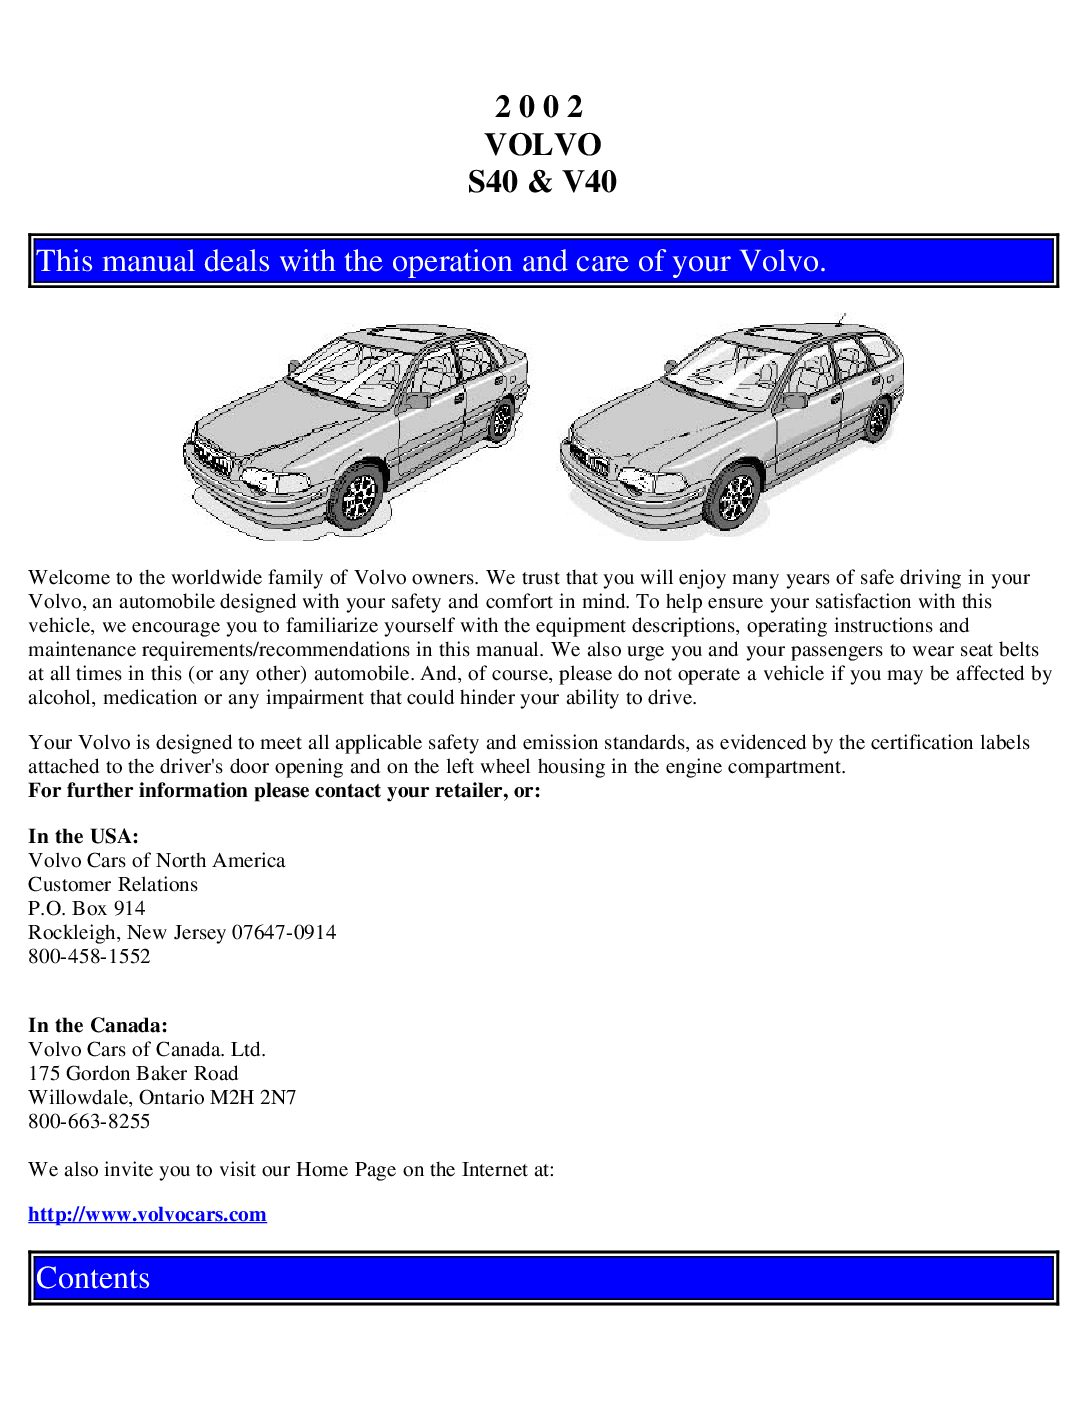 2002 volvo s40 v40 owners manual just give me the damn manual rh justgivemethedamnmanual com 2002 volvo v70 xc repair manual 2002 volvo xc70 owners manual